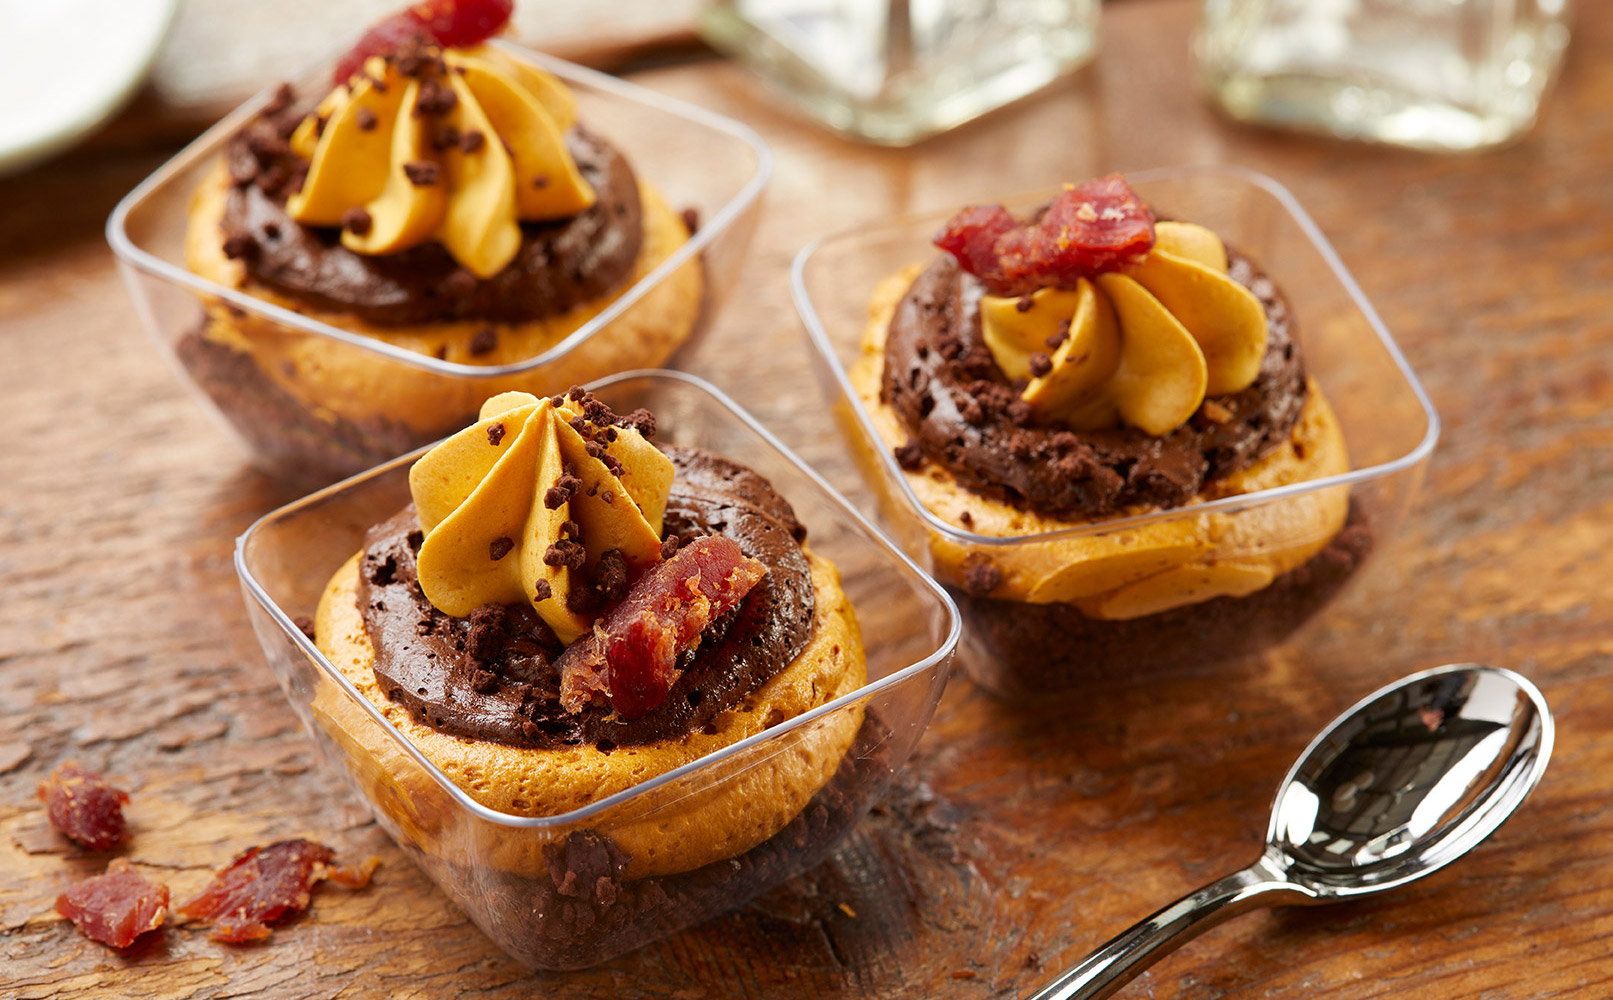 Salted Caramel Trifle with Bacon